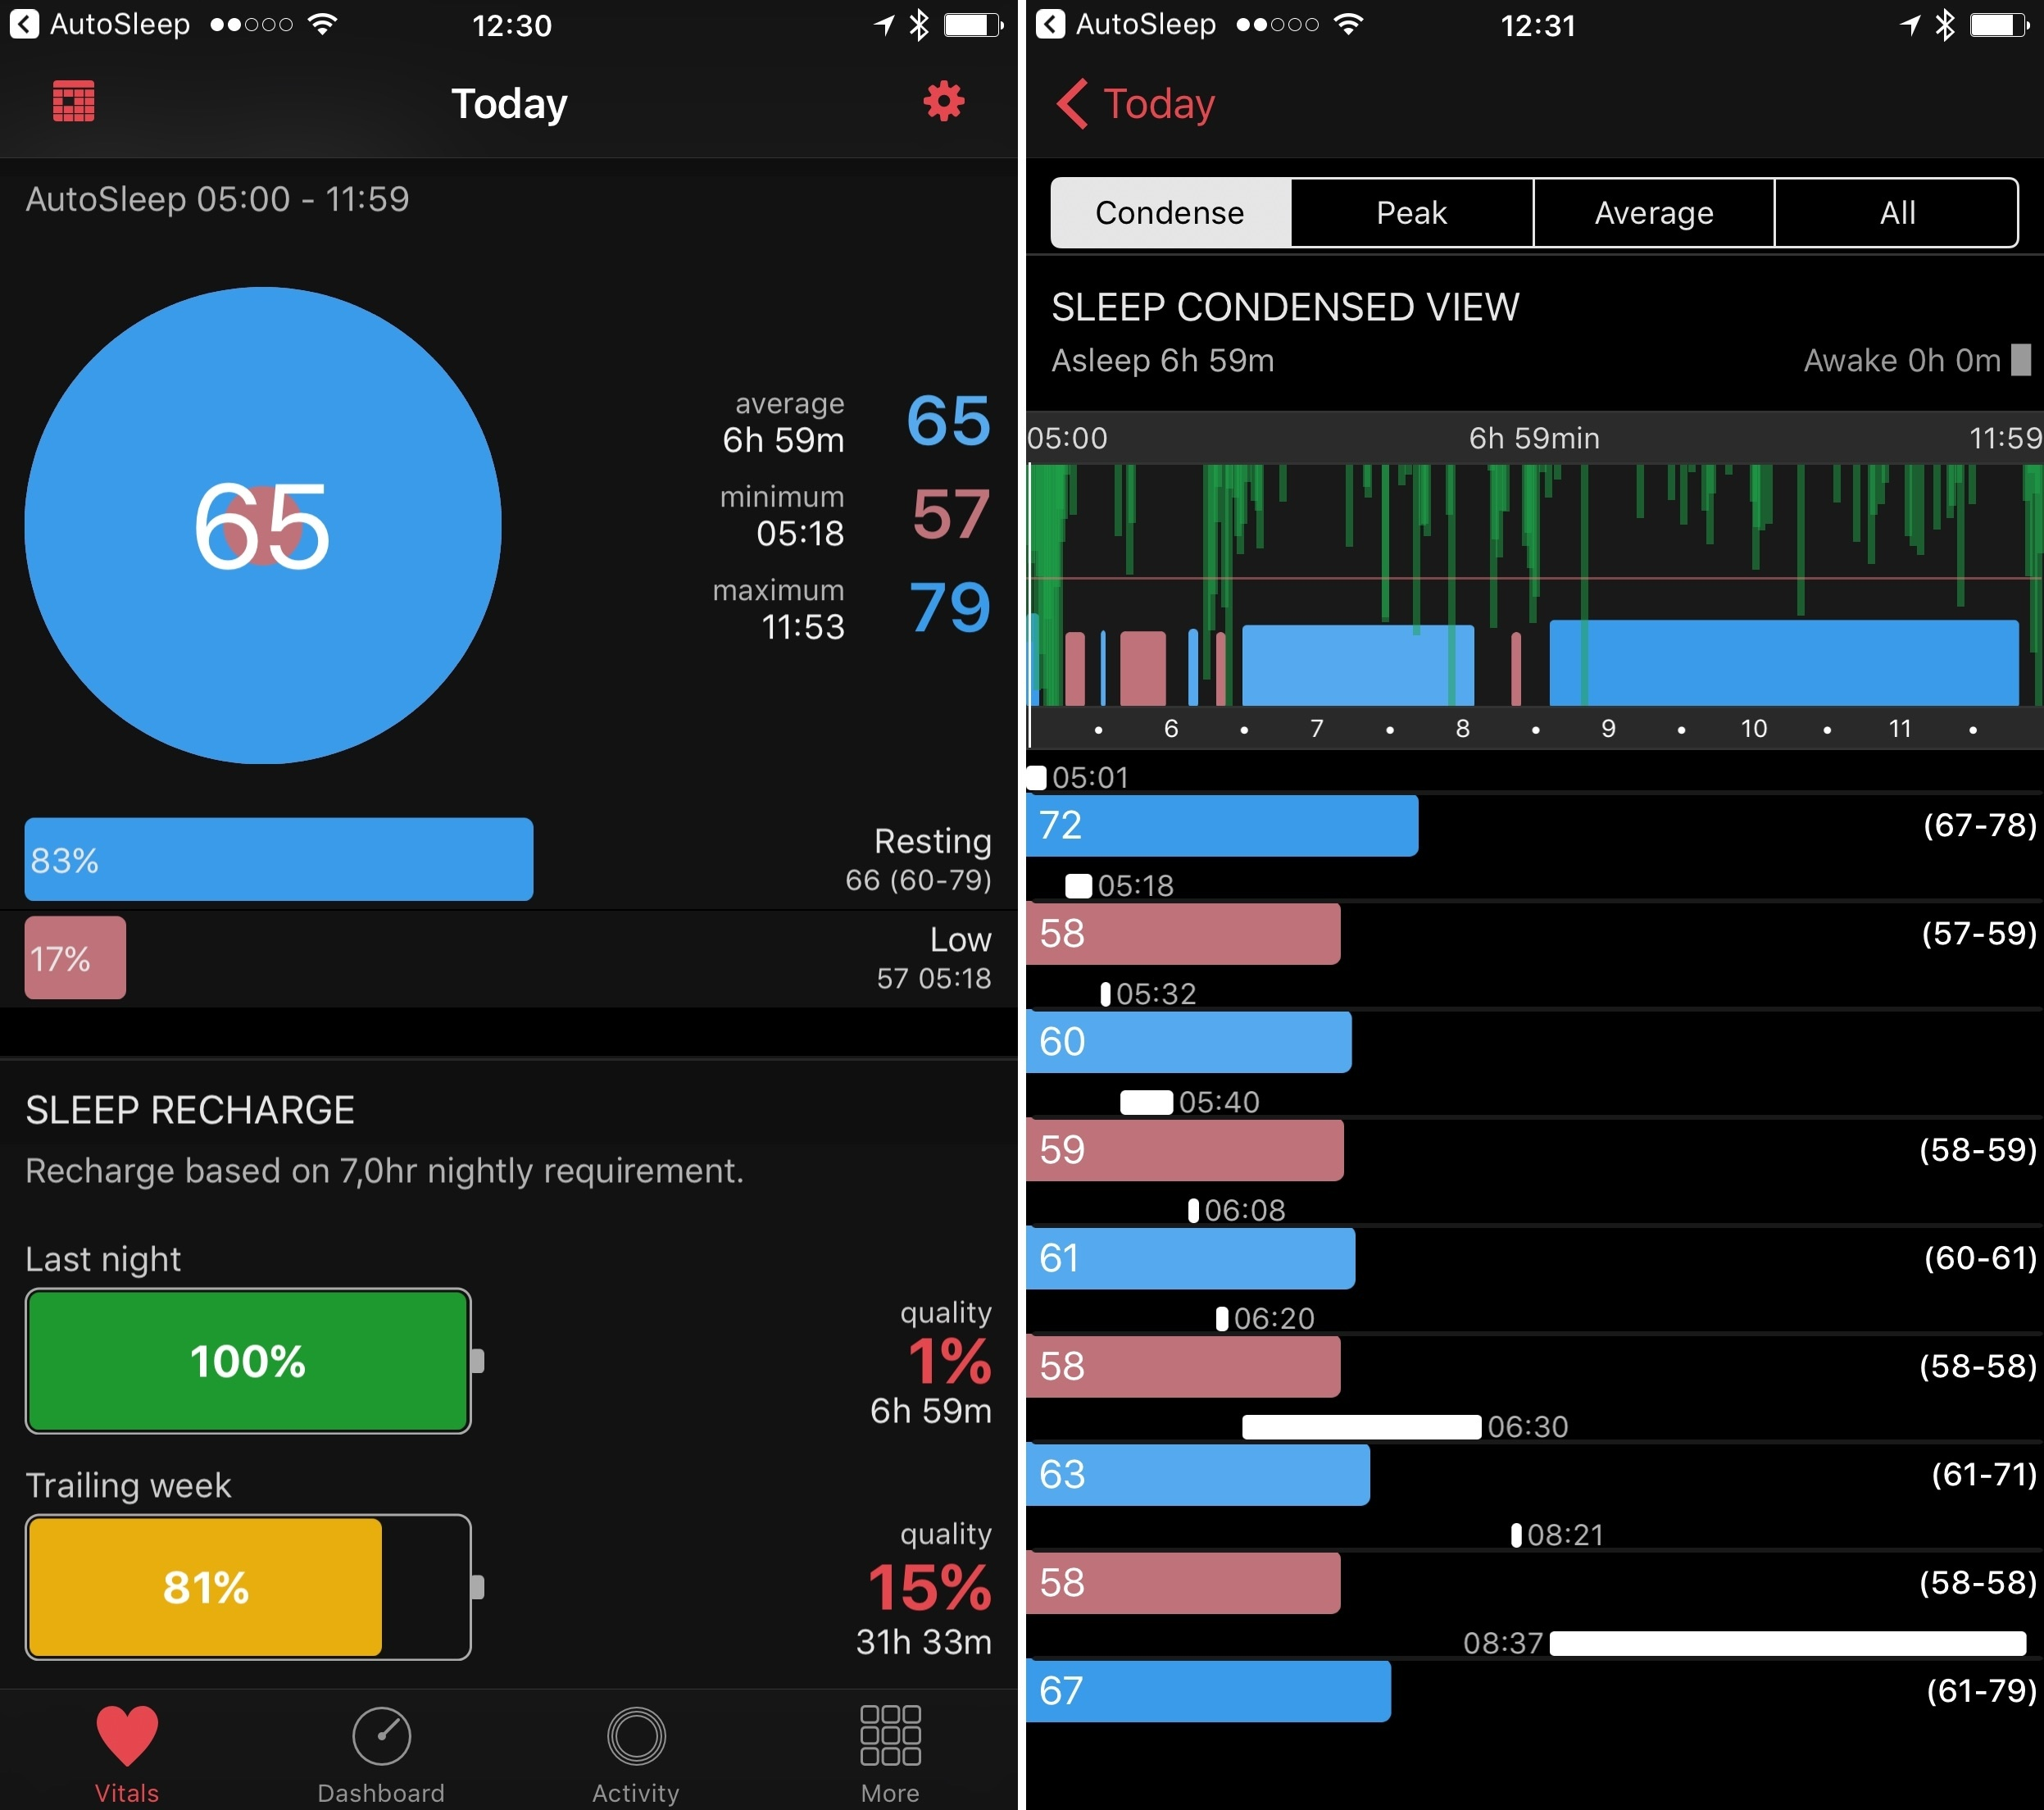 Viewing AutoSleep's data in Walsh's other app, HeartWatch.